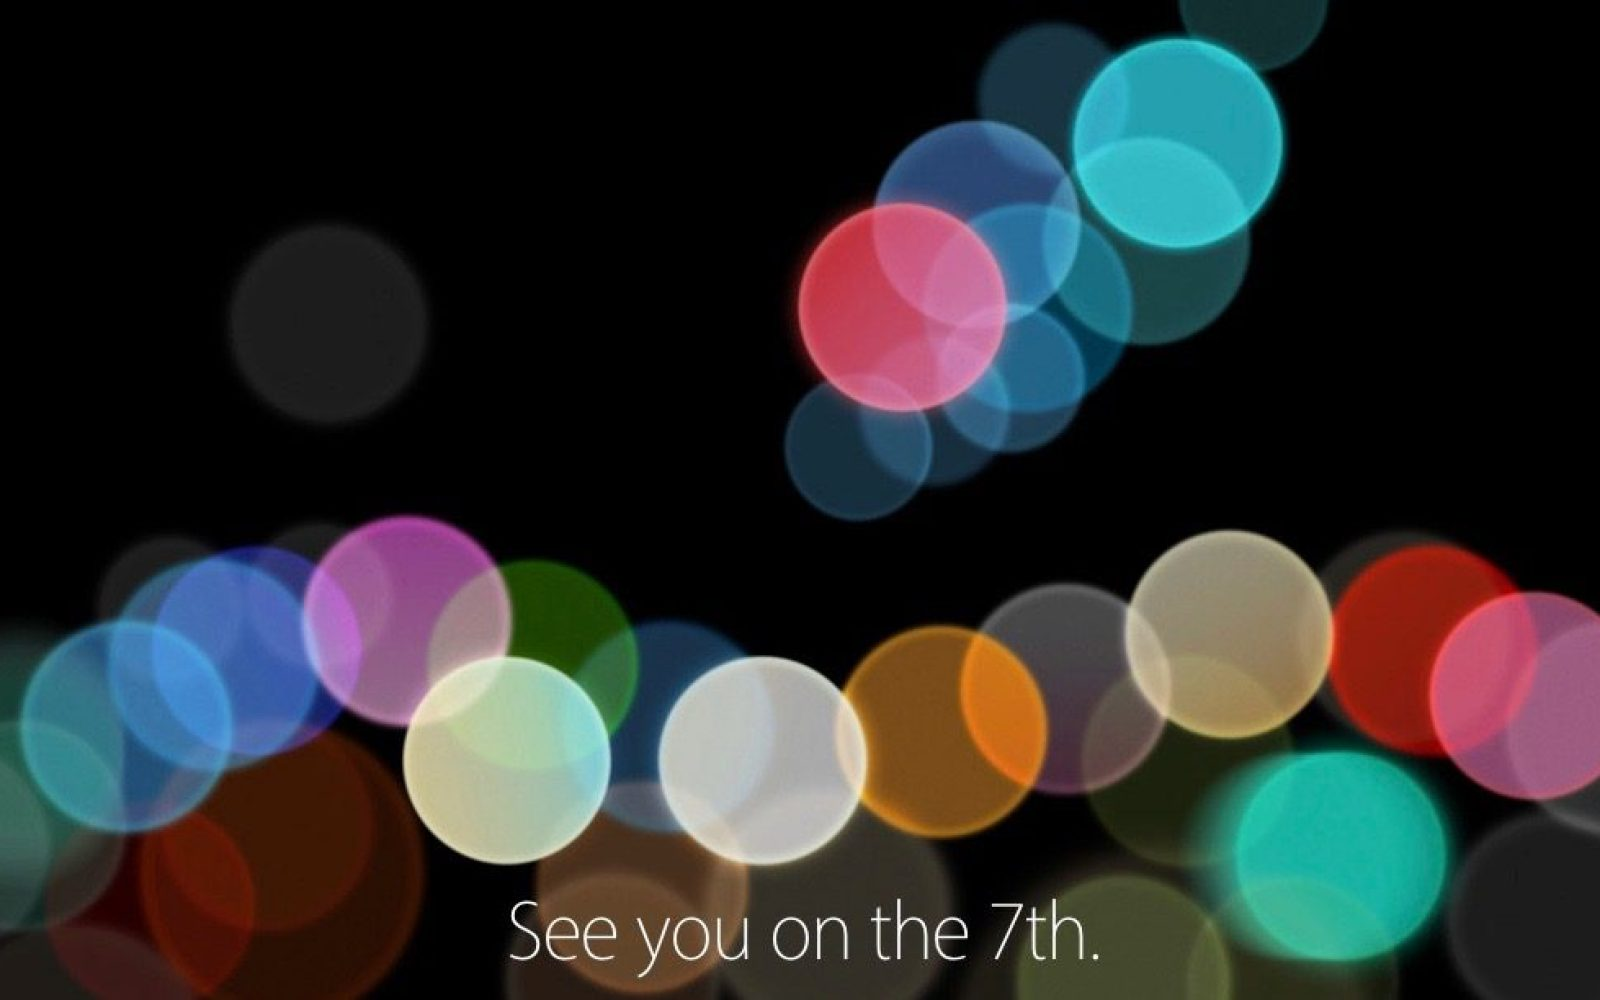 How to watch the Apple iPhone 7 event on iOS, Mac, Windows, Android and more